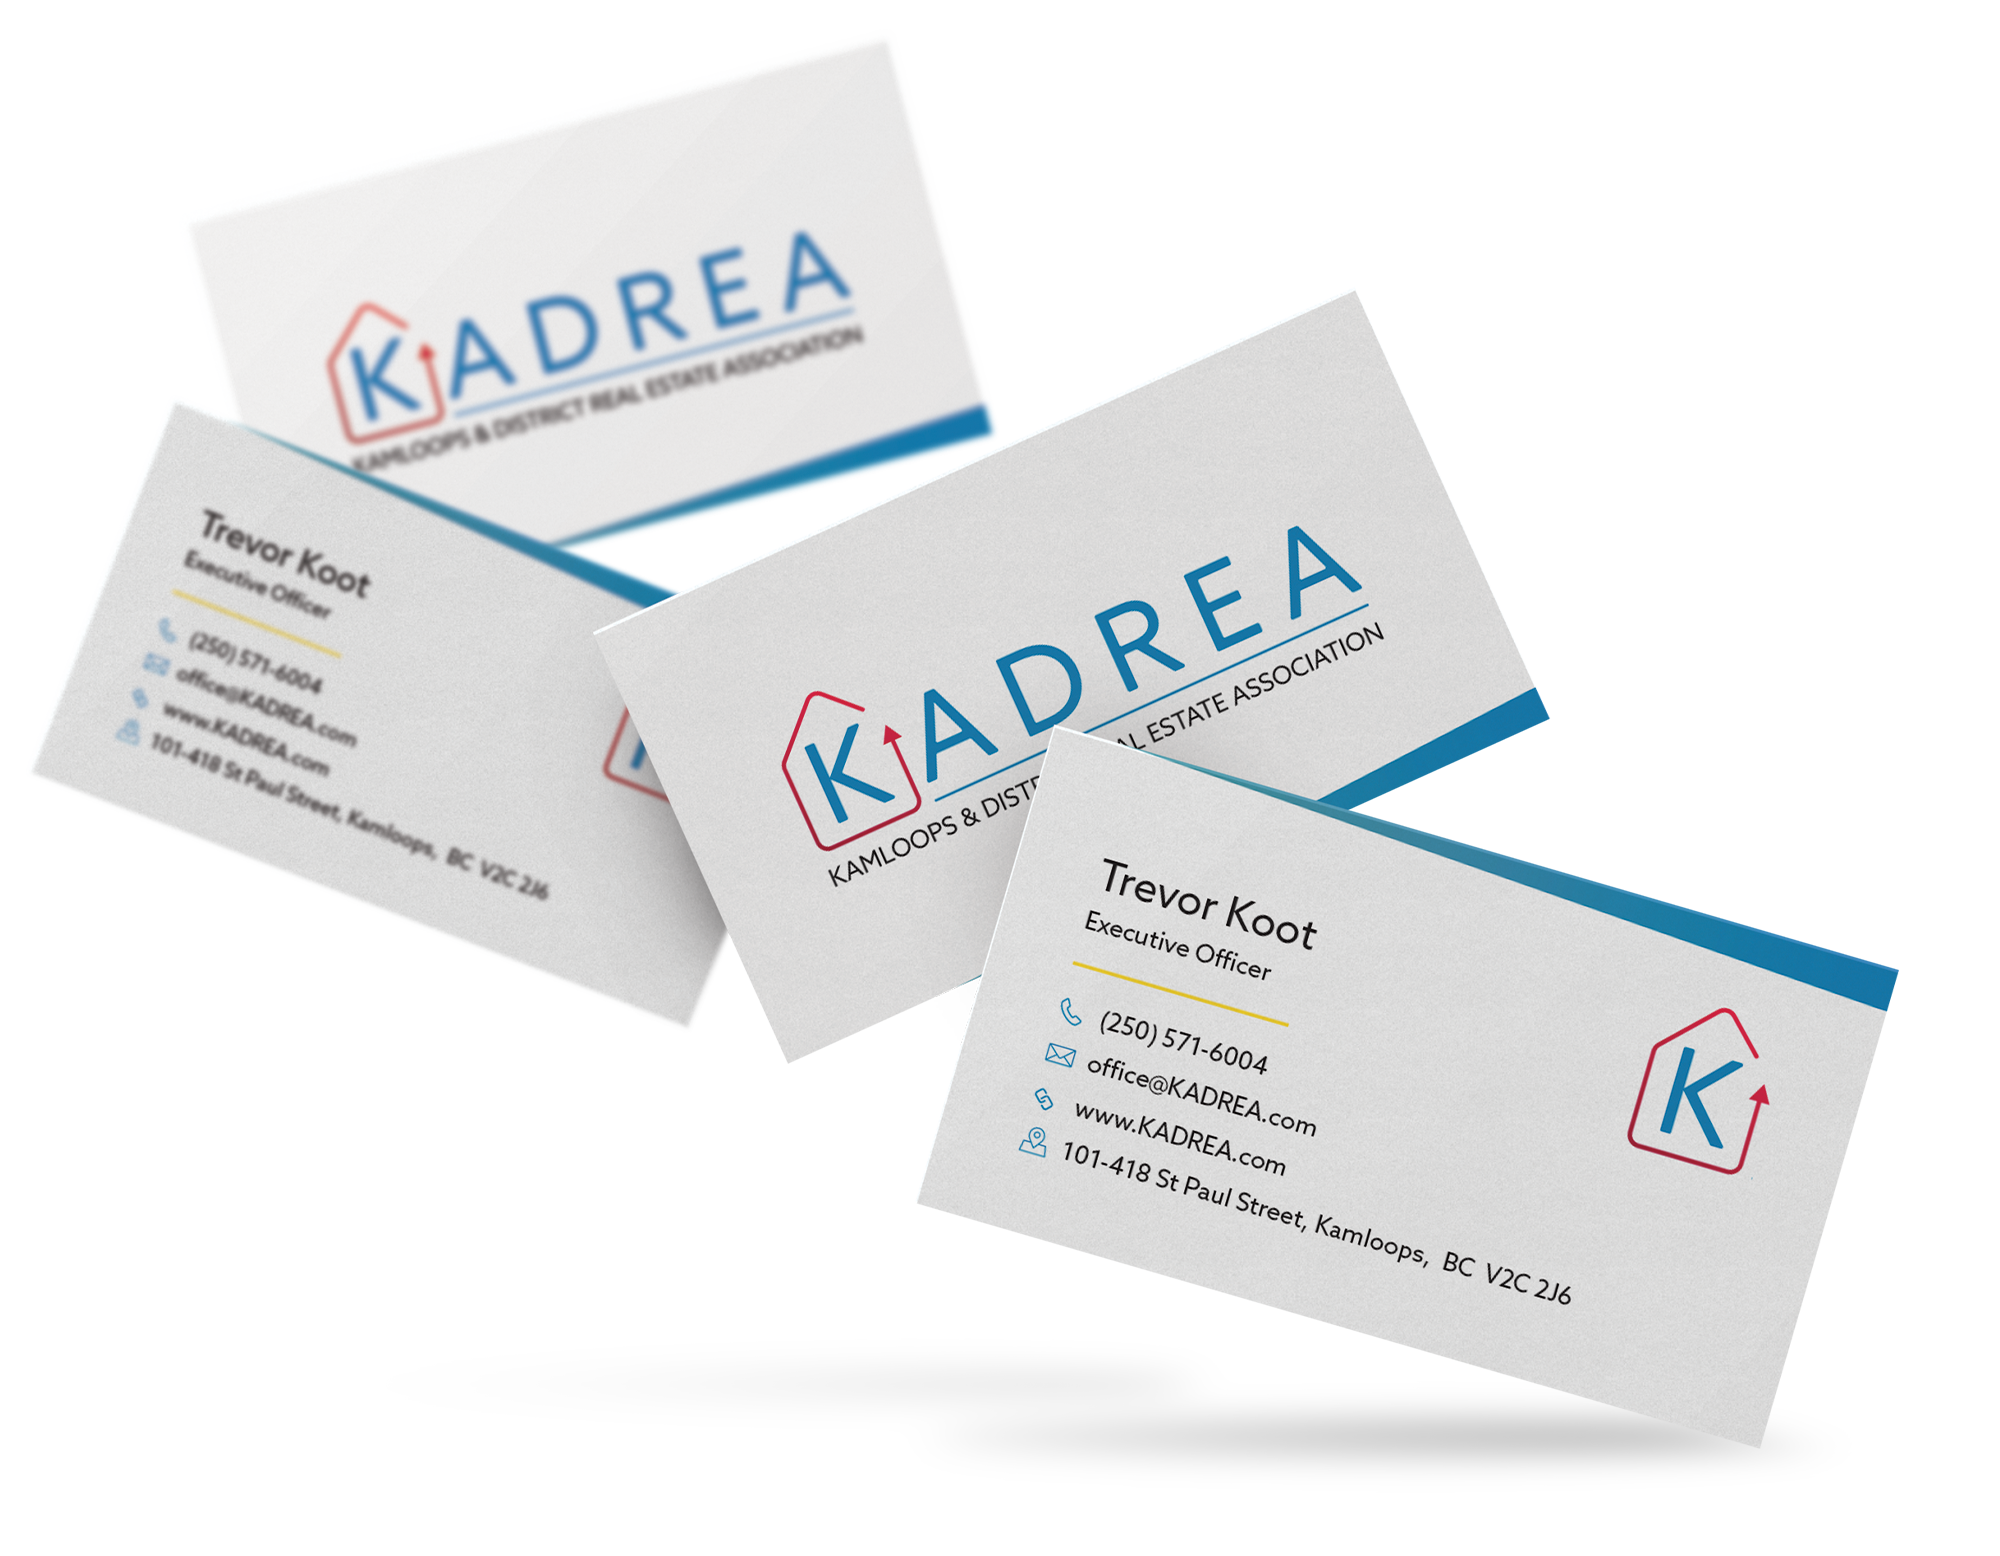 Example of new business card design for the Kamloops and District Real Estate Association.